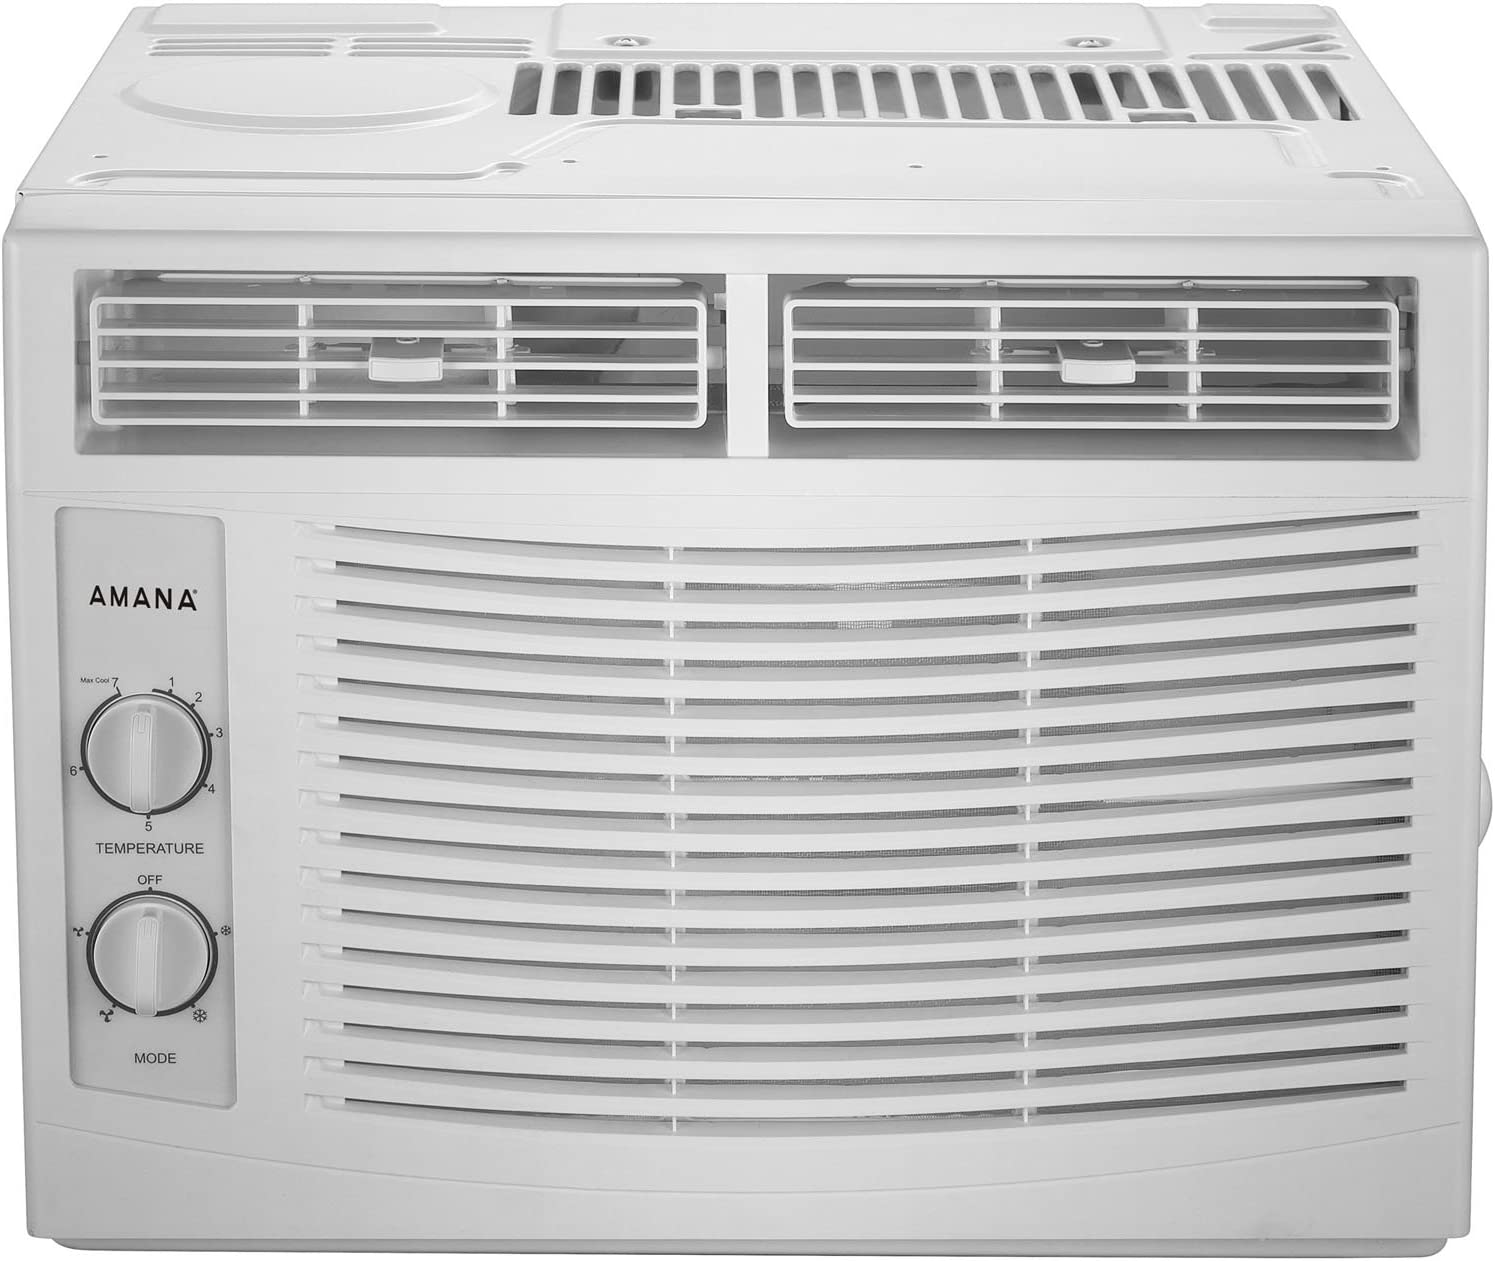 AMANA 5,000 BTU 115V Window-Mounted Air Conditioner